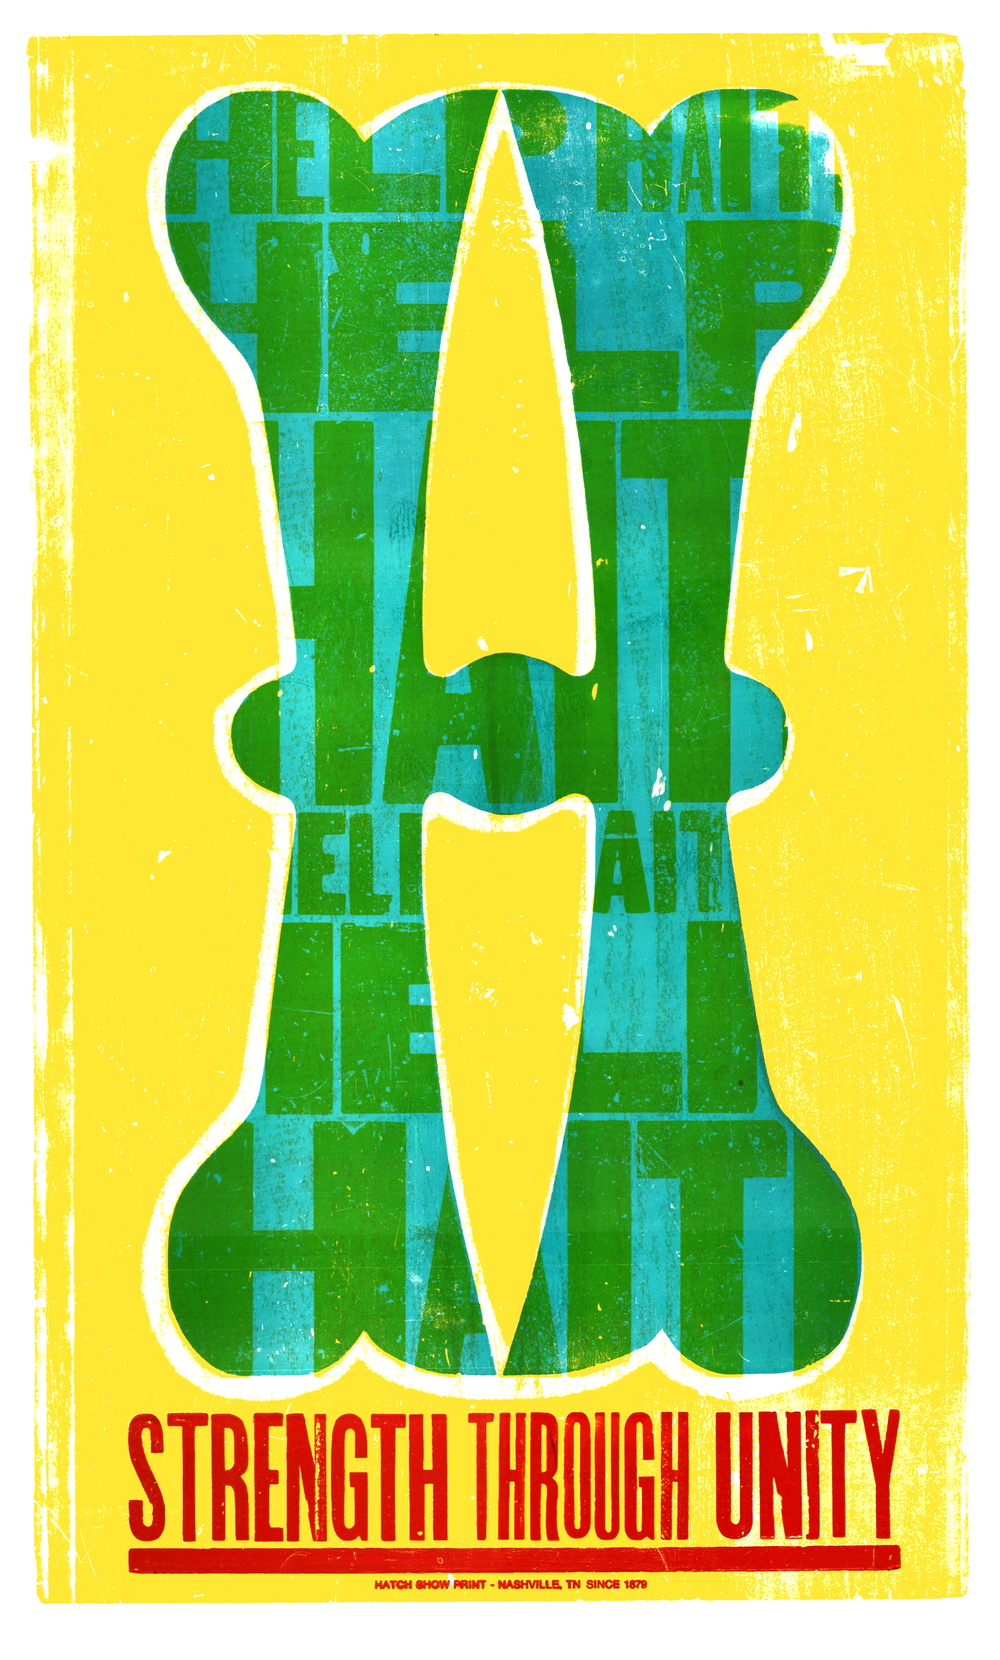 Haiti Poster Project, 4-color letterpress benefit poster, 2010